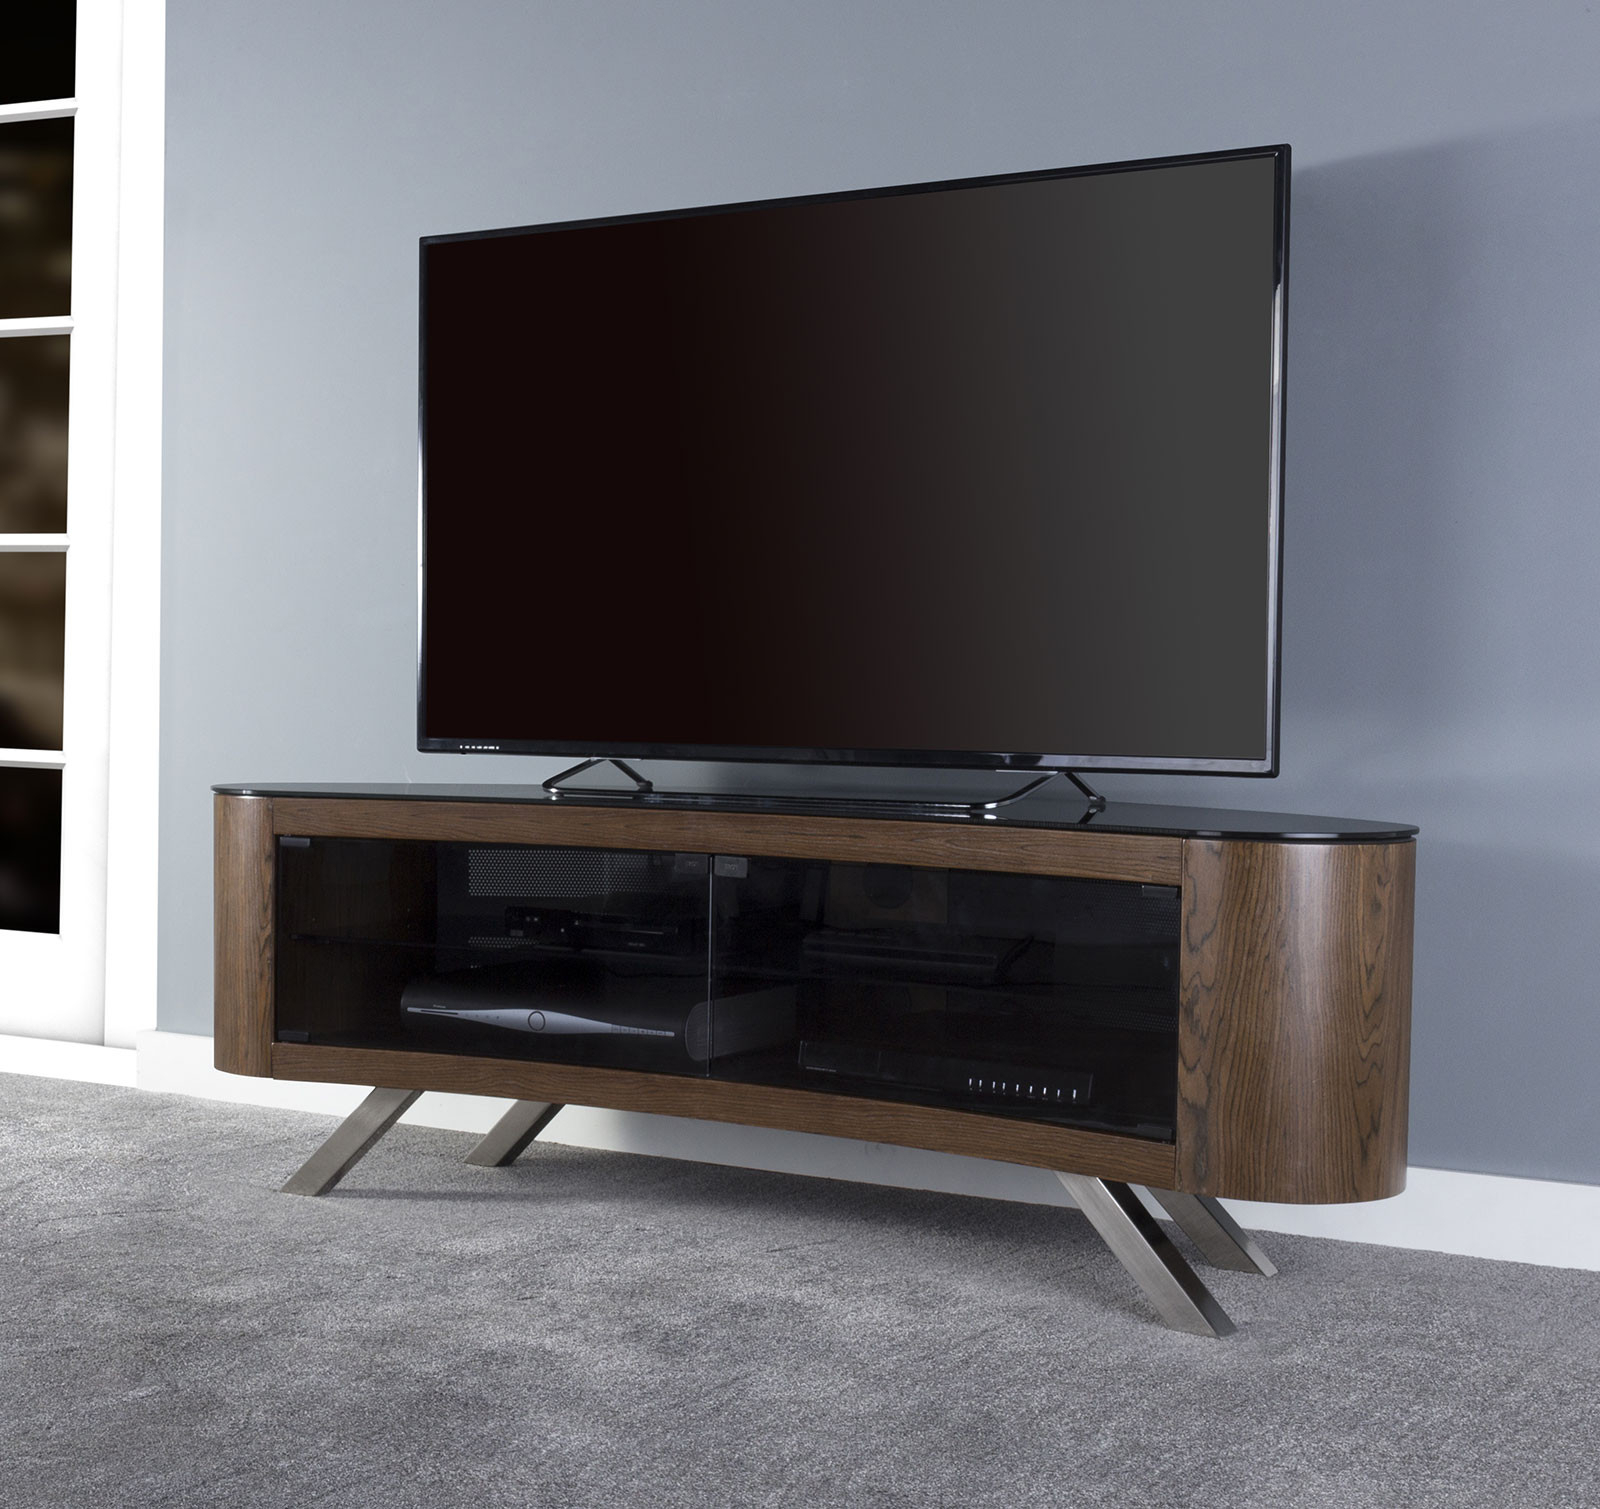 Favorite Avf Fs15Bayxw A Affinity Plus Bay Curved Tv Stand (View 6 of 20)